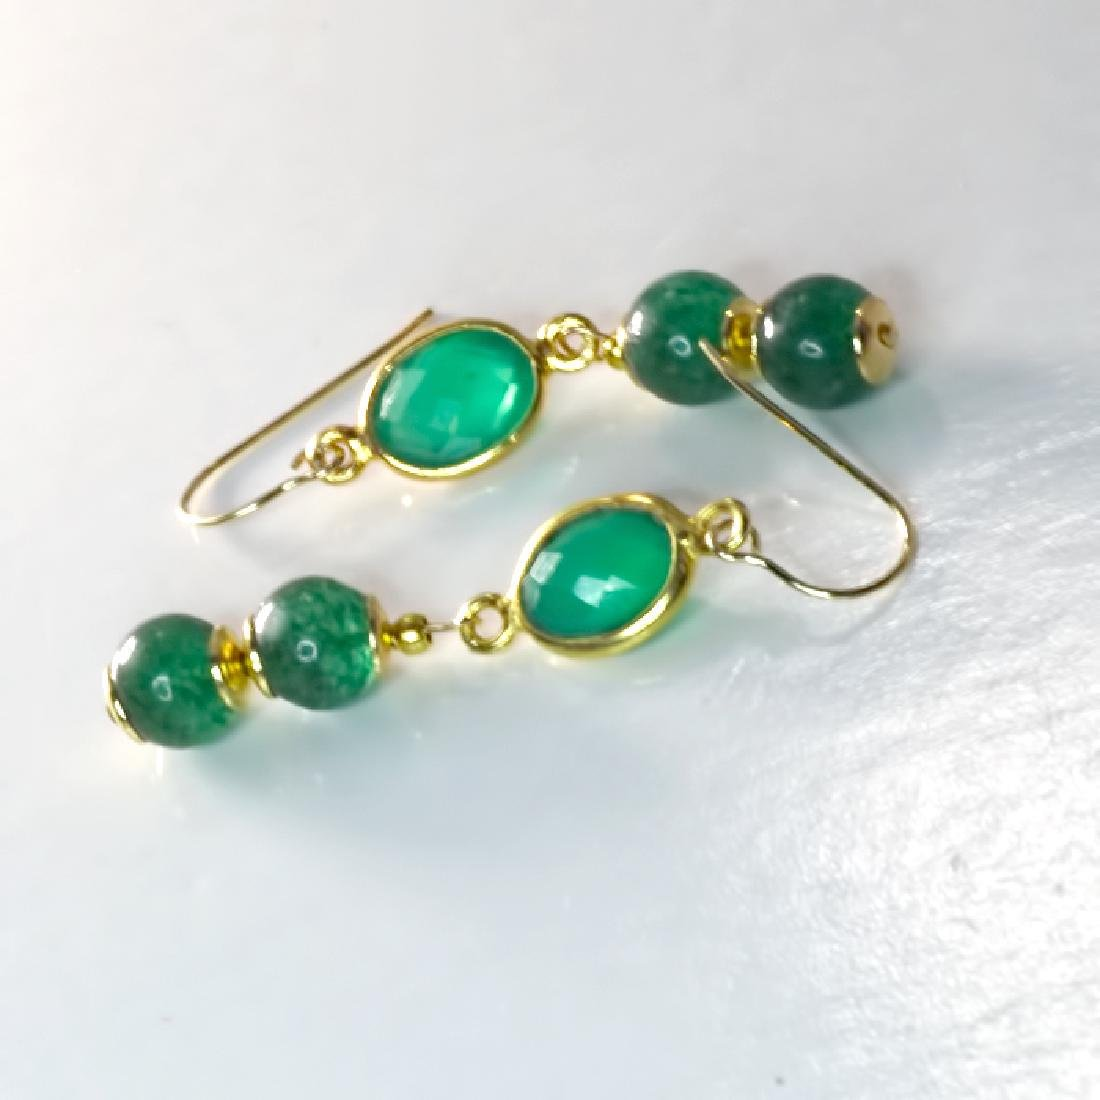 14K Art Deco Style Earrings with Jadeite Jade and - 3